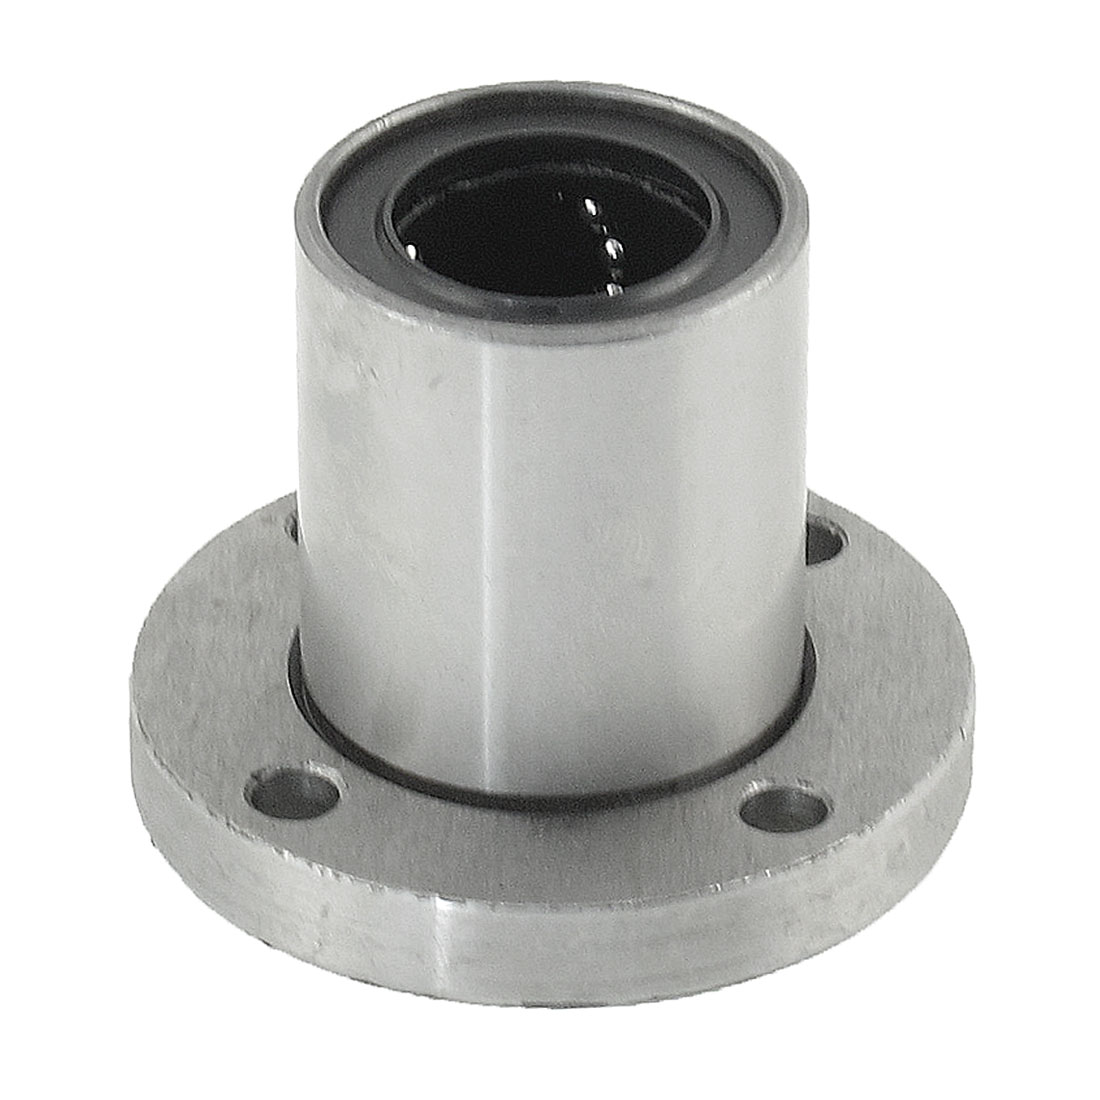 LMK20UU 20mm x 32mm x 42mm Linear Motion Ball Bearing